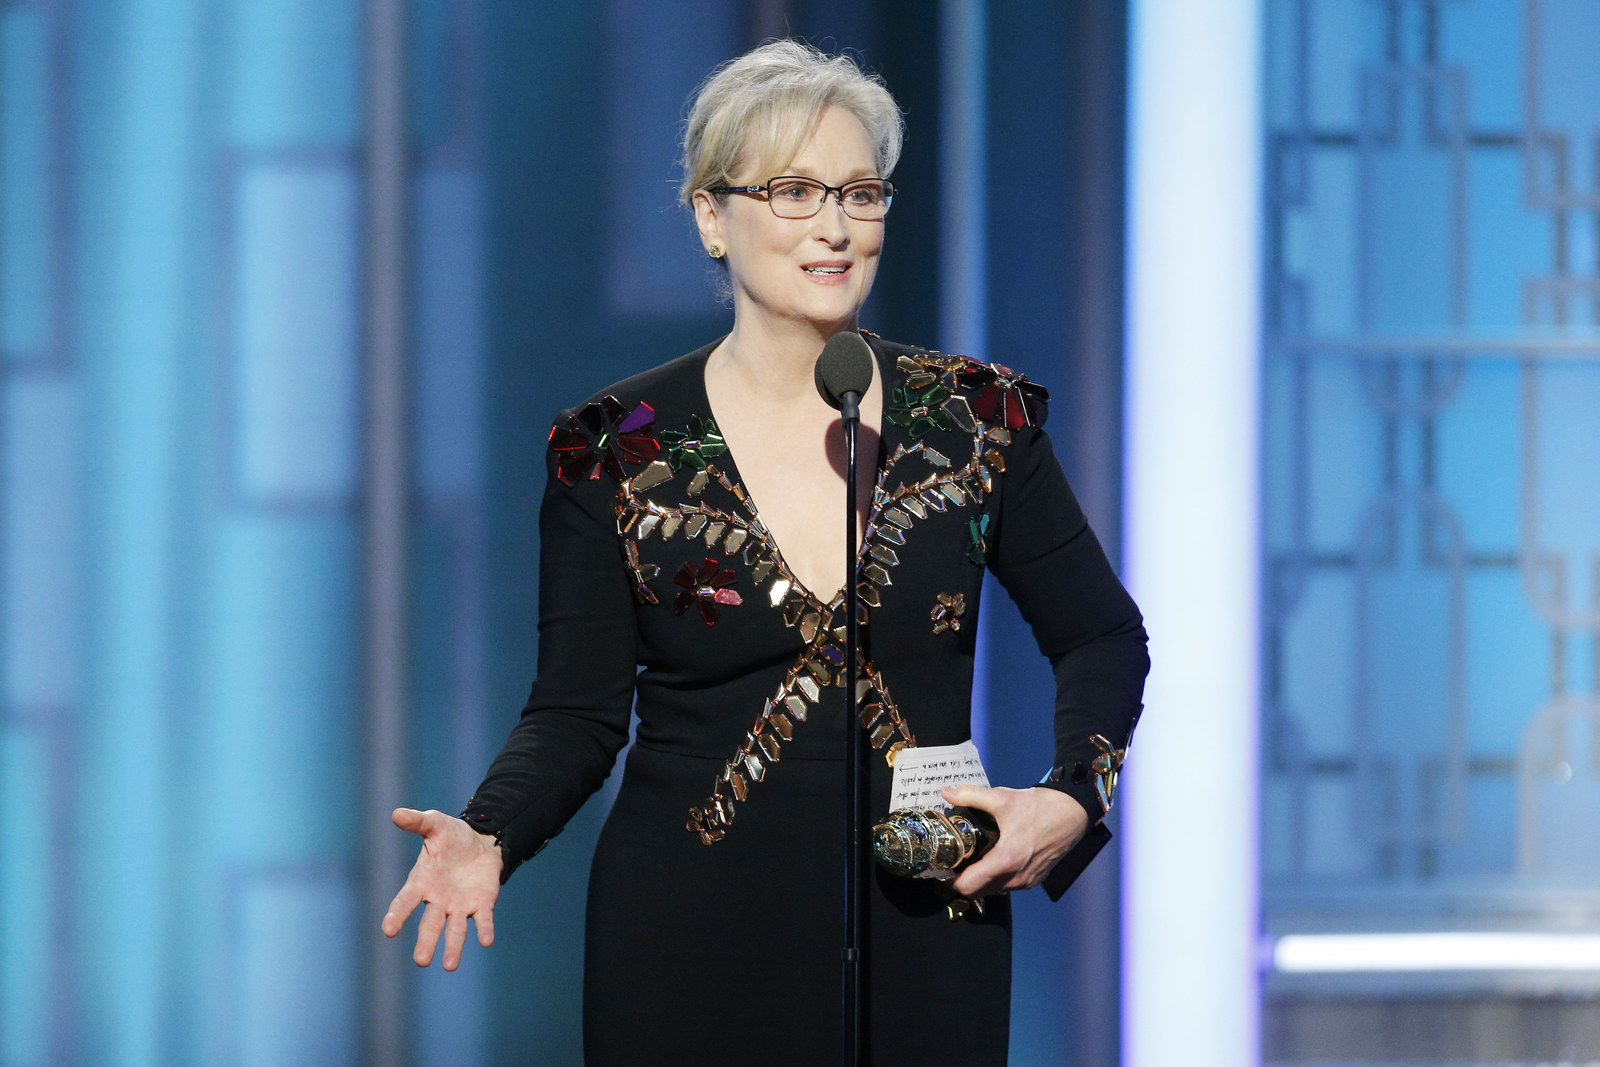 India's biggest stars – Shah Rukh Khan, Aamir Khan, Karan Johar, and more – actually have tried taking anti-establishment stands like Streep did at the Golden Globes. But, in India's increasingly restrictive political climate, it's never proven worth the time and losses.